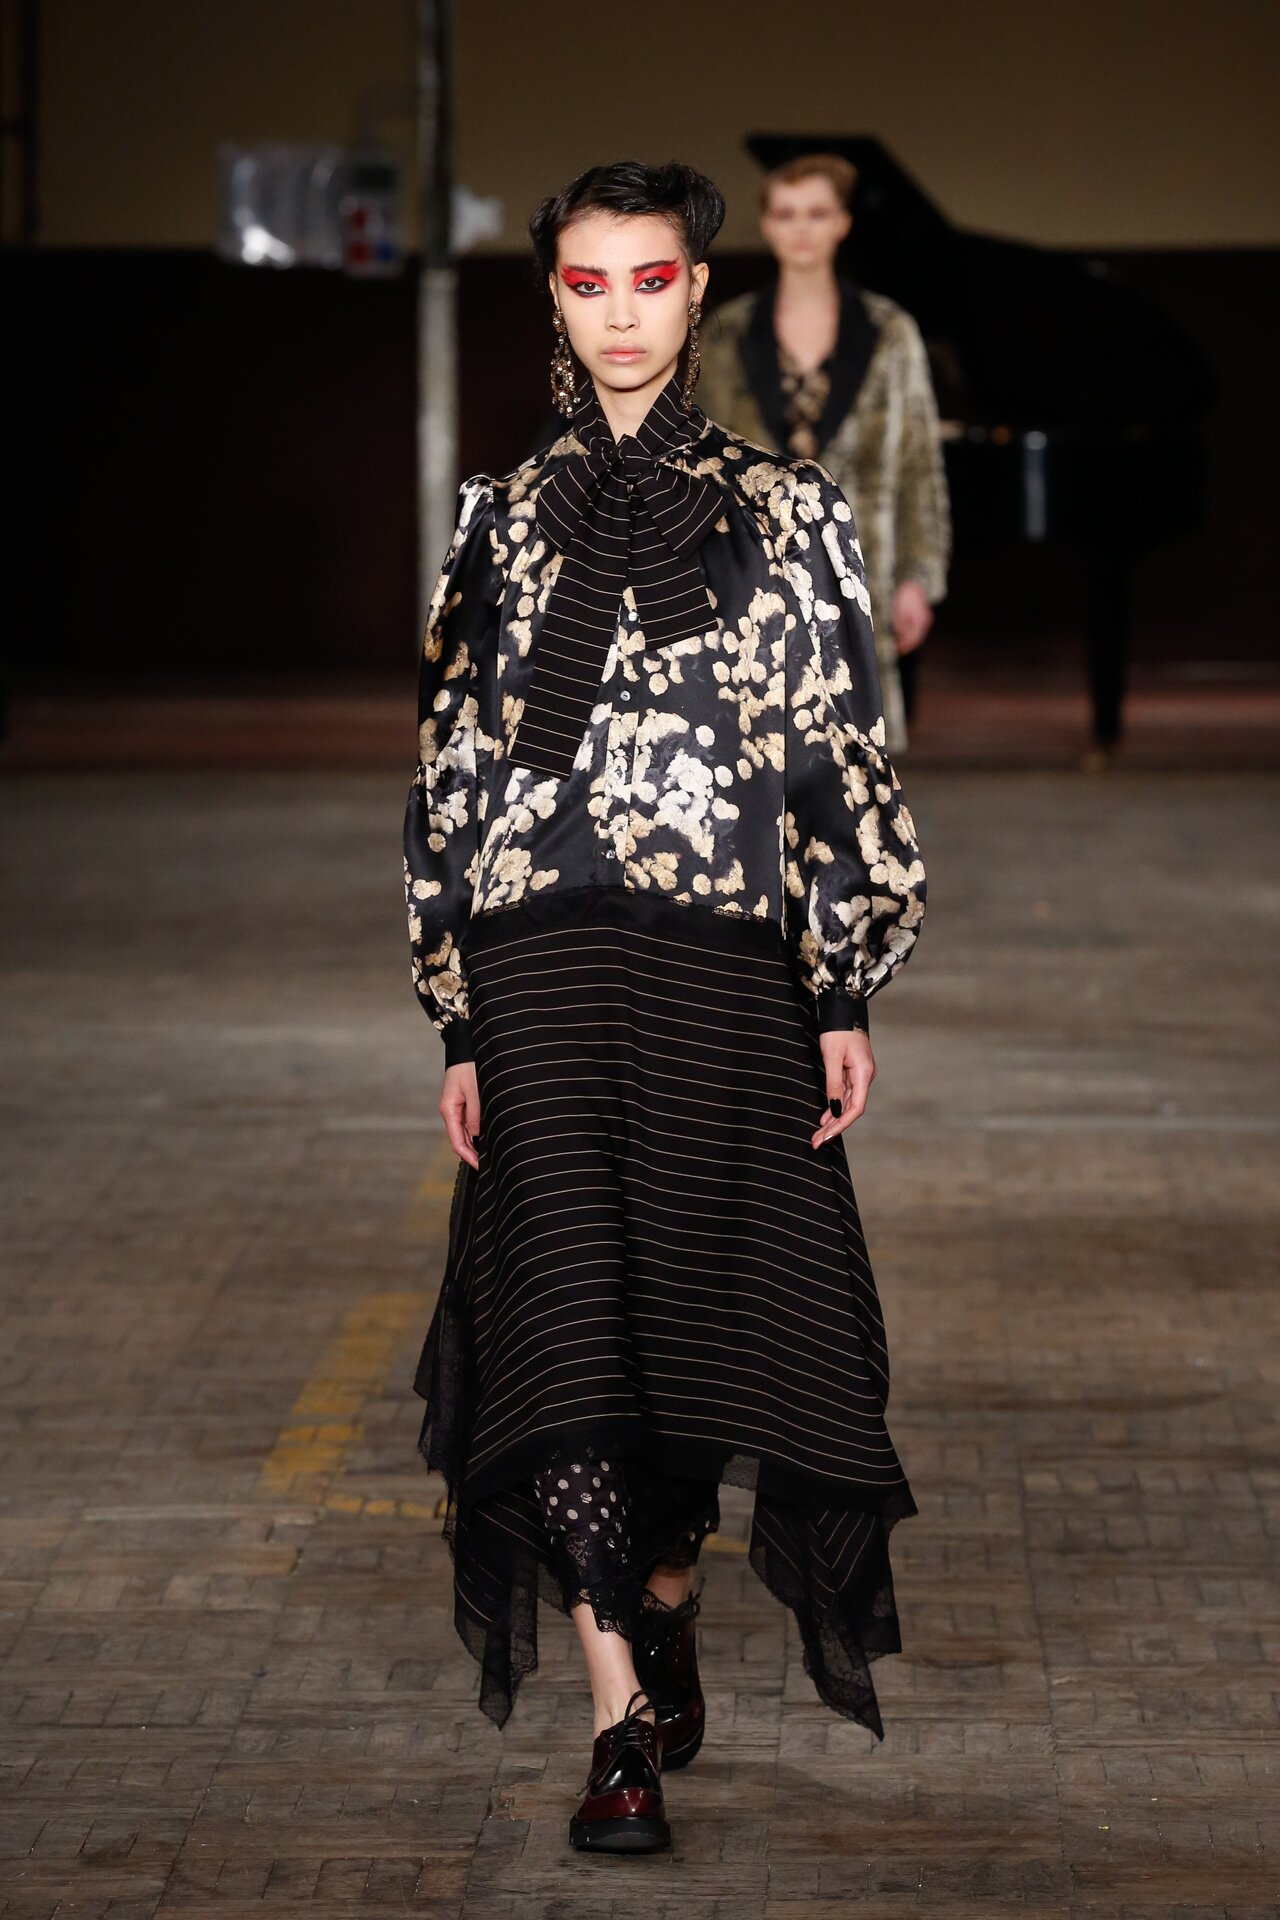 Antonio Marras Fall Winter 2018-19 Fashion Show Look 63